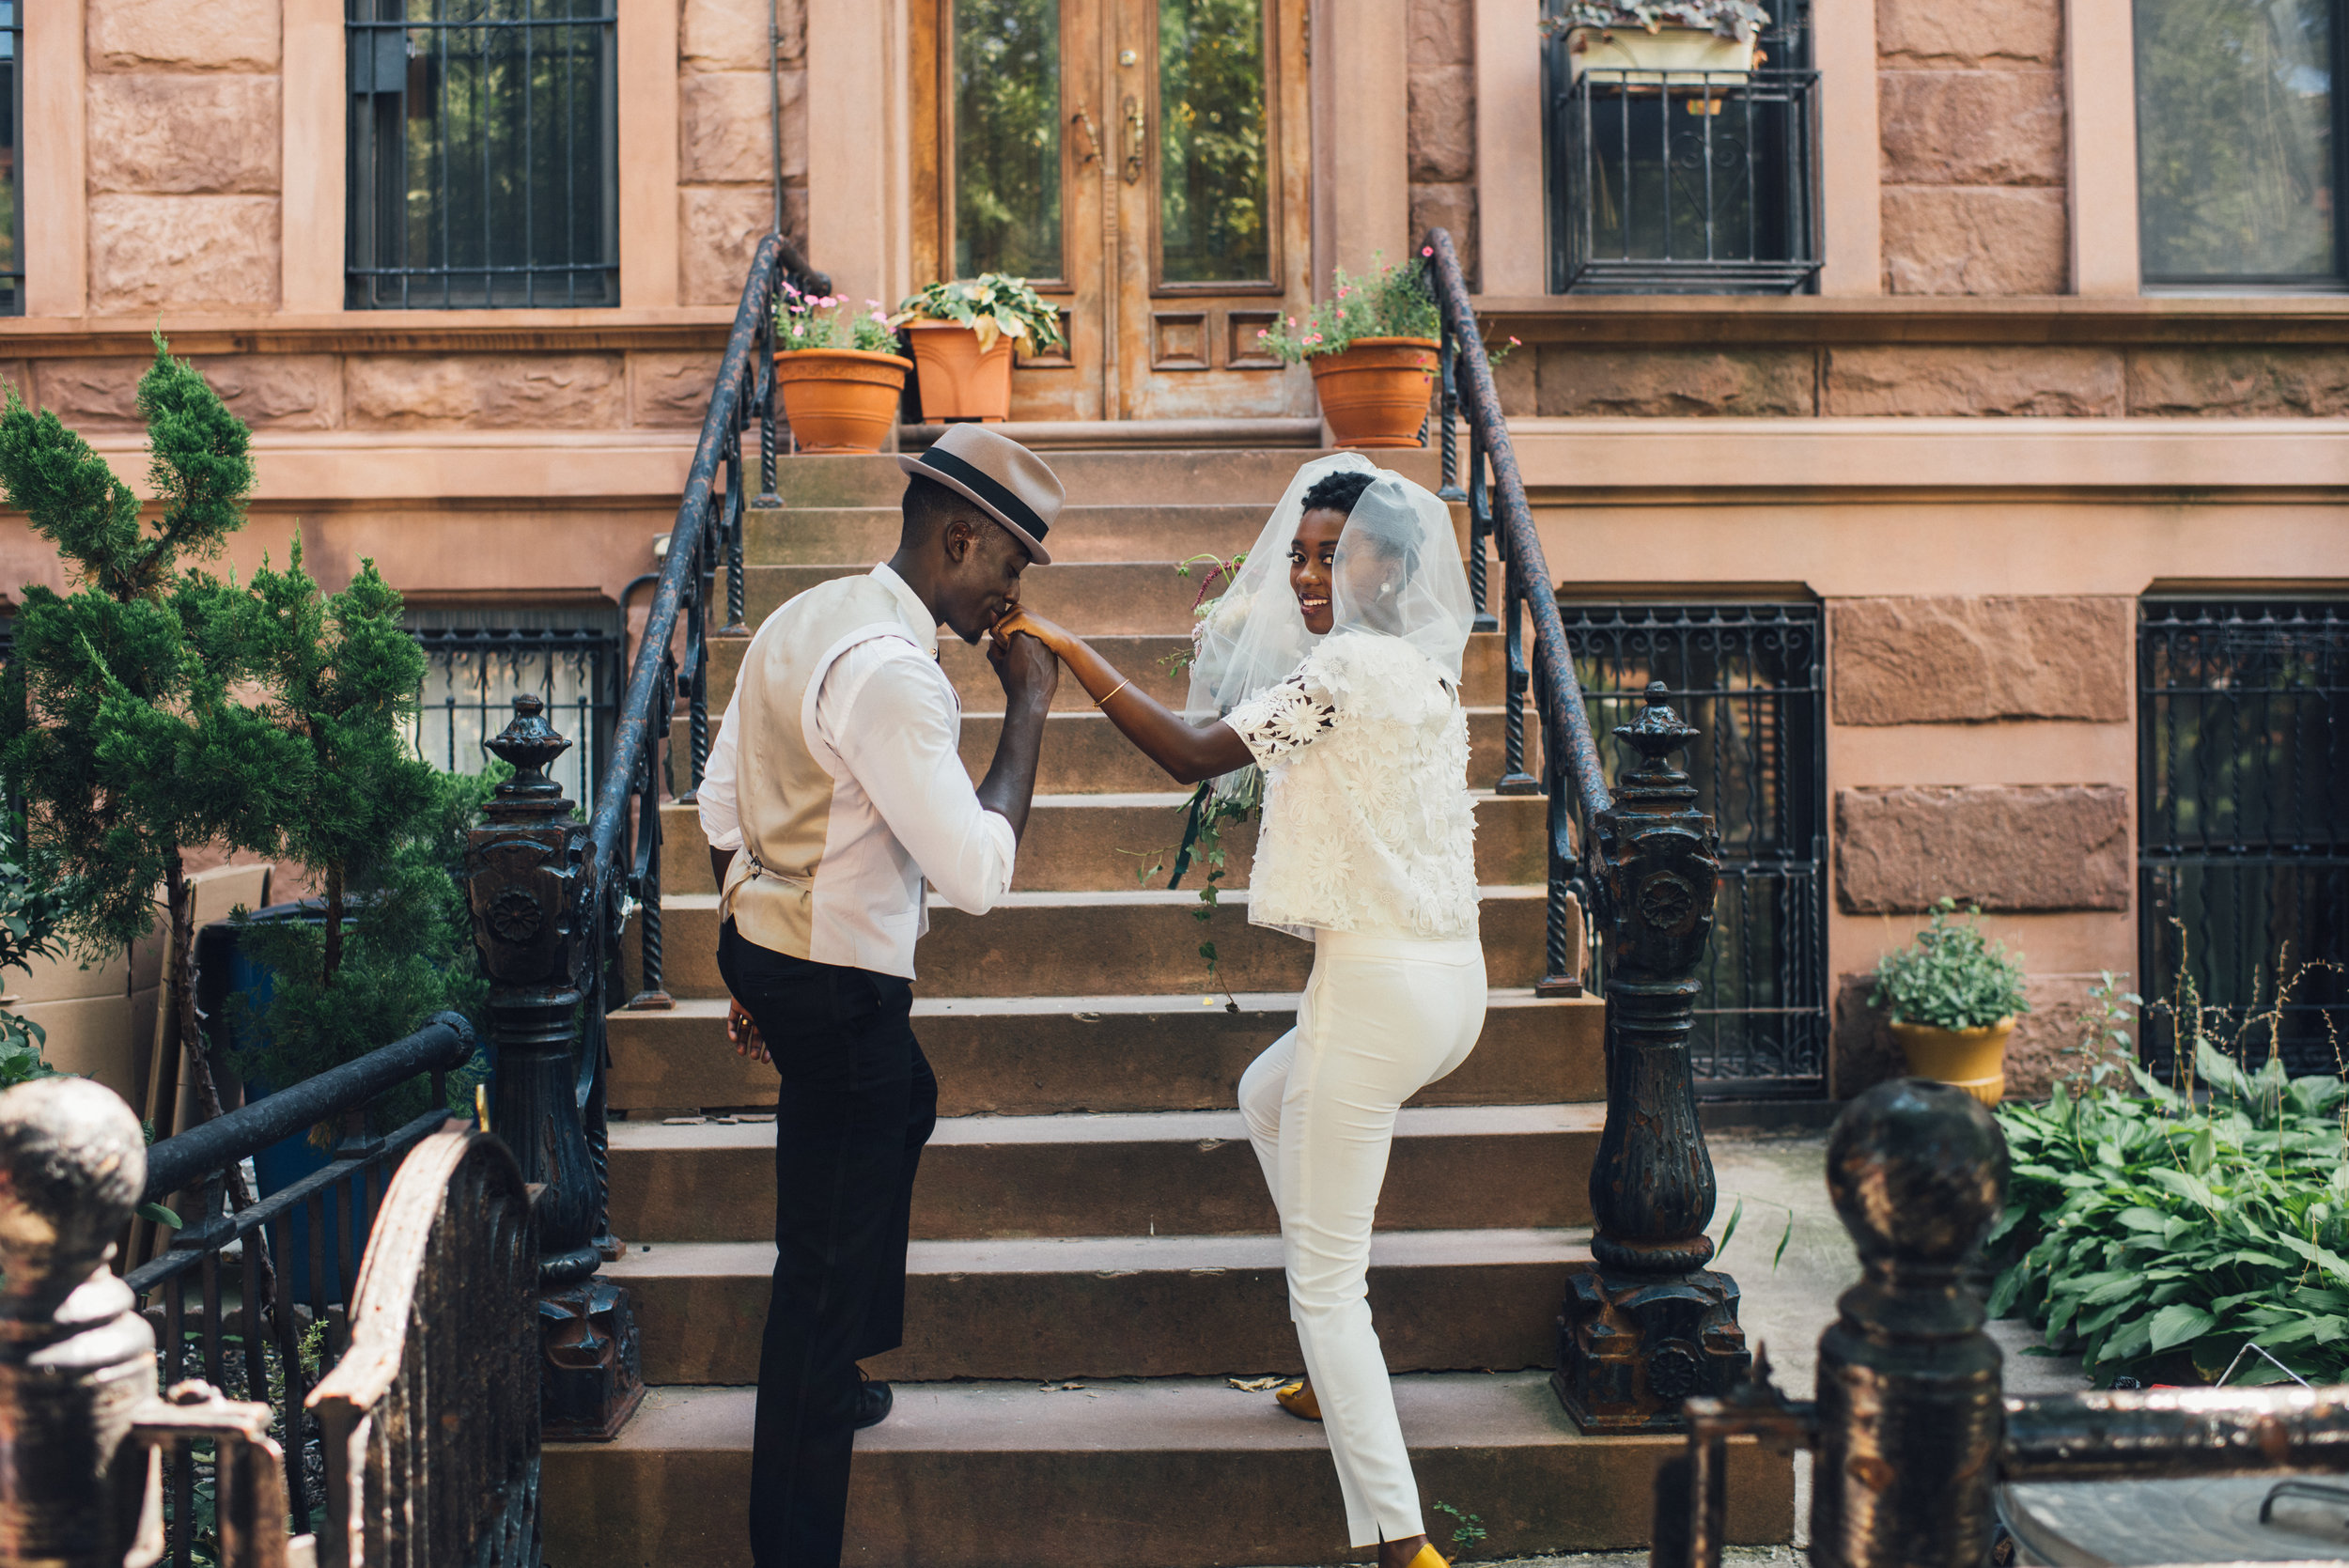 BROOKLYN BRIDE - INTIMATE WEDDING PHOTOGRAPHER - TWOTWENTY by CHI-CHI AGBIM-167.jpg